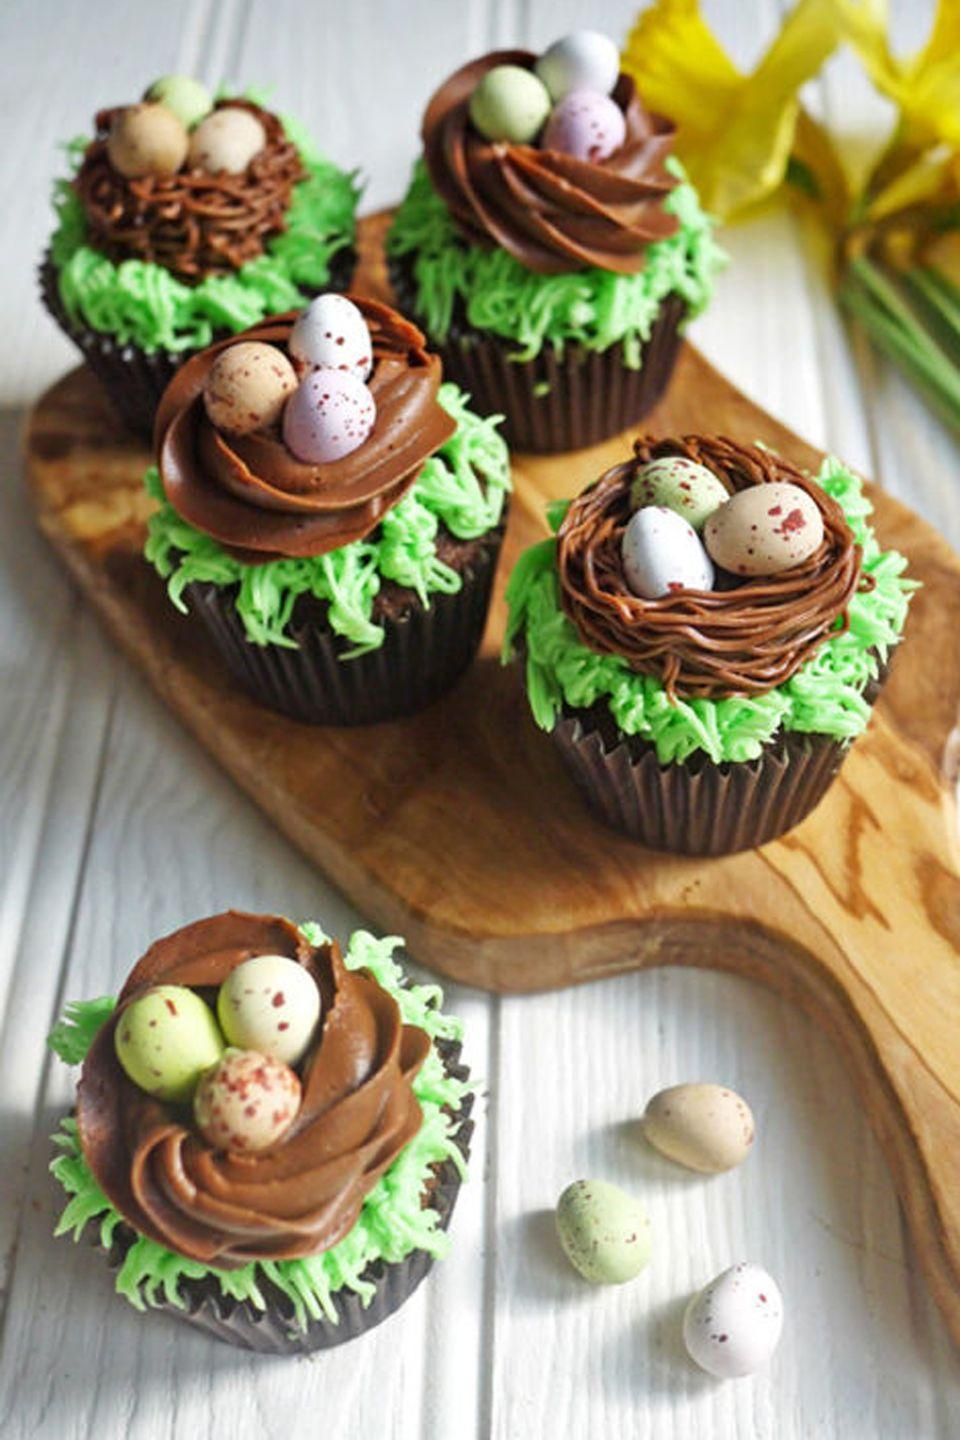 """<p>As if you needed another excuse to devour a whole bag of Cadbury eggs. </p><p><em><a href=""""https://www.tamingtwins.com/easter-chocolate-nest-mini-egg-cupcakes-kids-cooking/"""" rel=""""nofollow noopener"""" target=""""_blank"""" data-ylk=""""slk:Get the recipe from Taming Twins »"""" class=""""link rapid-noclick-resp"""">Get the recipe from Taming Twins »</a></em></p><p><strong>RELATED: </strong><a href=""""https://www.goodhousekeeping.com/food-recipes/dessert/g3328/cadbury-egg-recipes/"""" rel=""""nofollow noopener"""" target=""""_blank"""" data-ylk=""""slk:25 Amazing Desserts You Can Make With Cadbury Eggs"""" class=""""link rapid-noclick-resp"""">25 Amazing Desserts You Can Make With Cadbury Eggs</a></p>"""